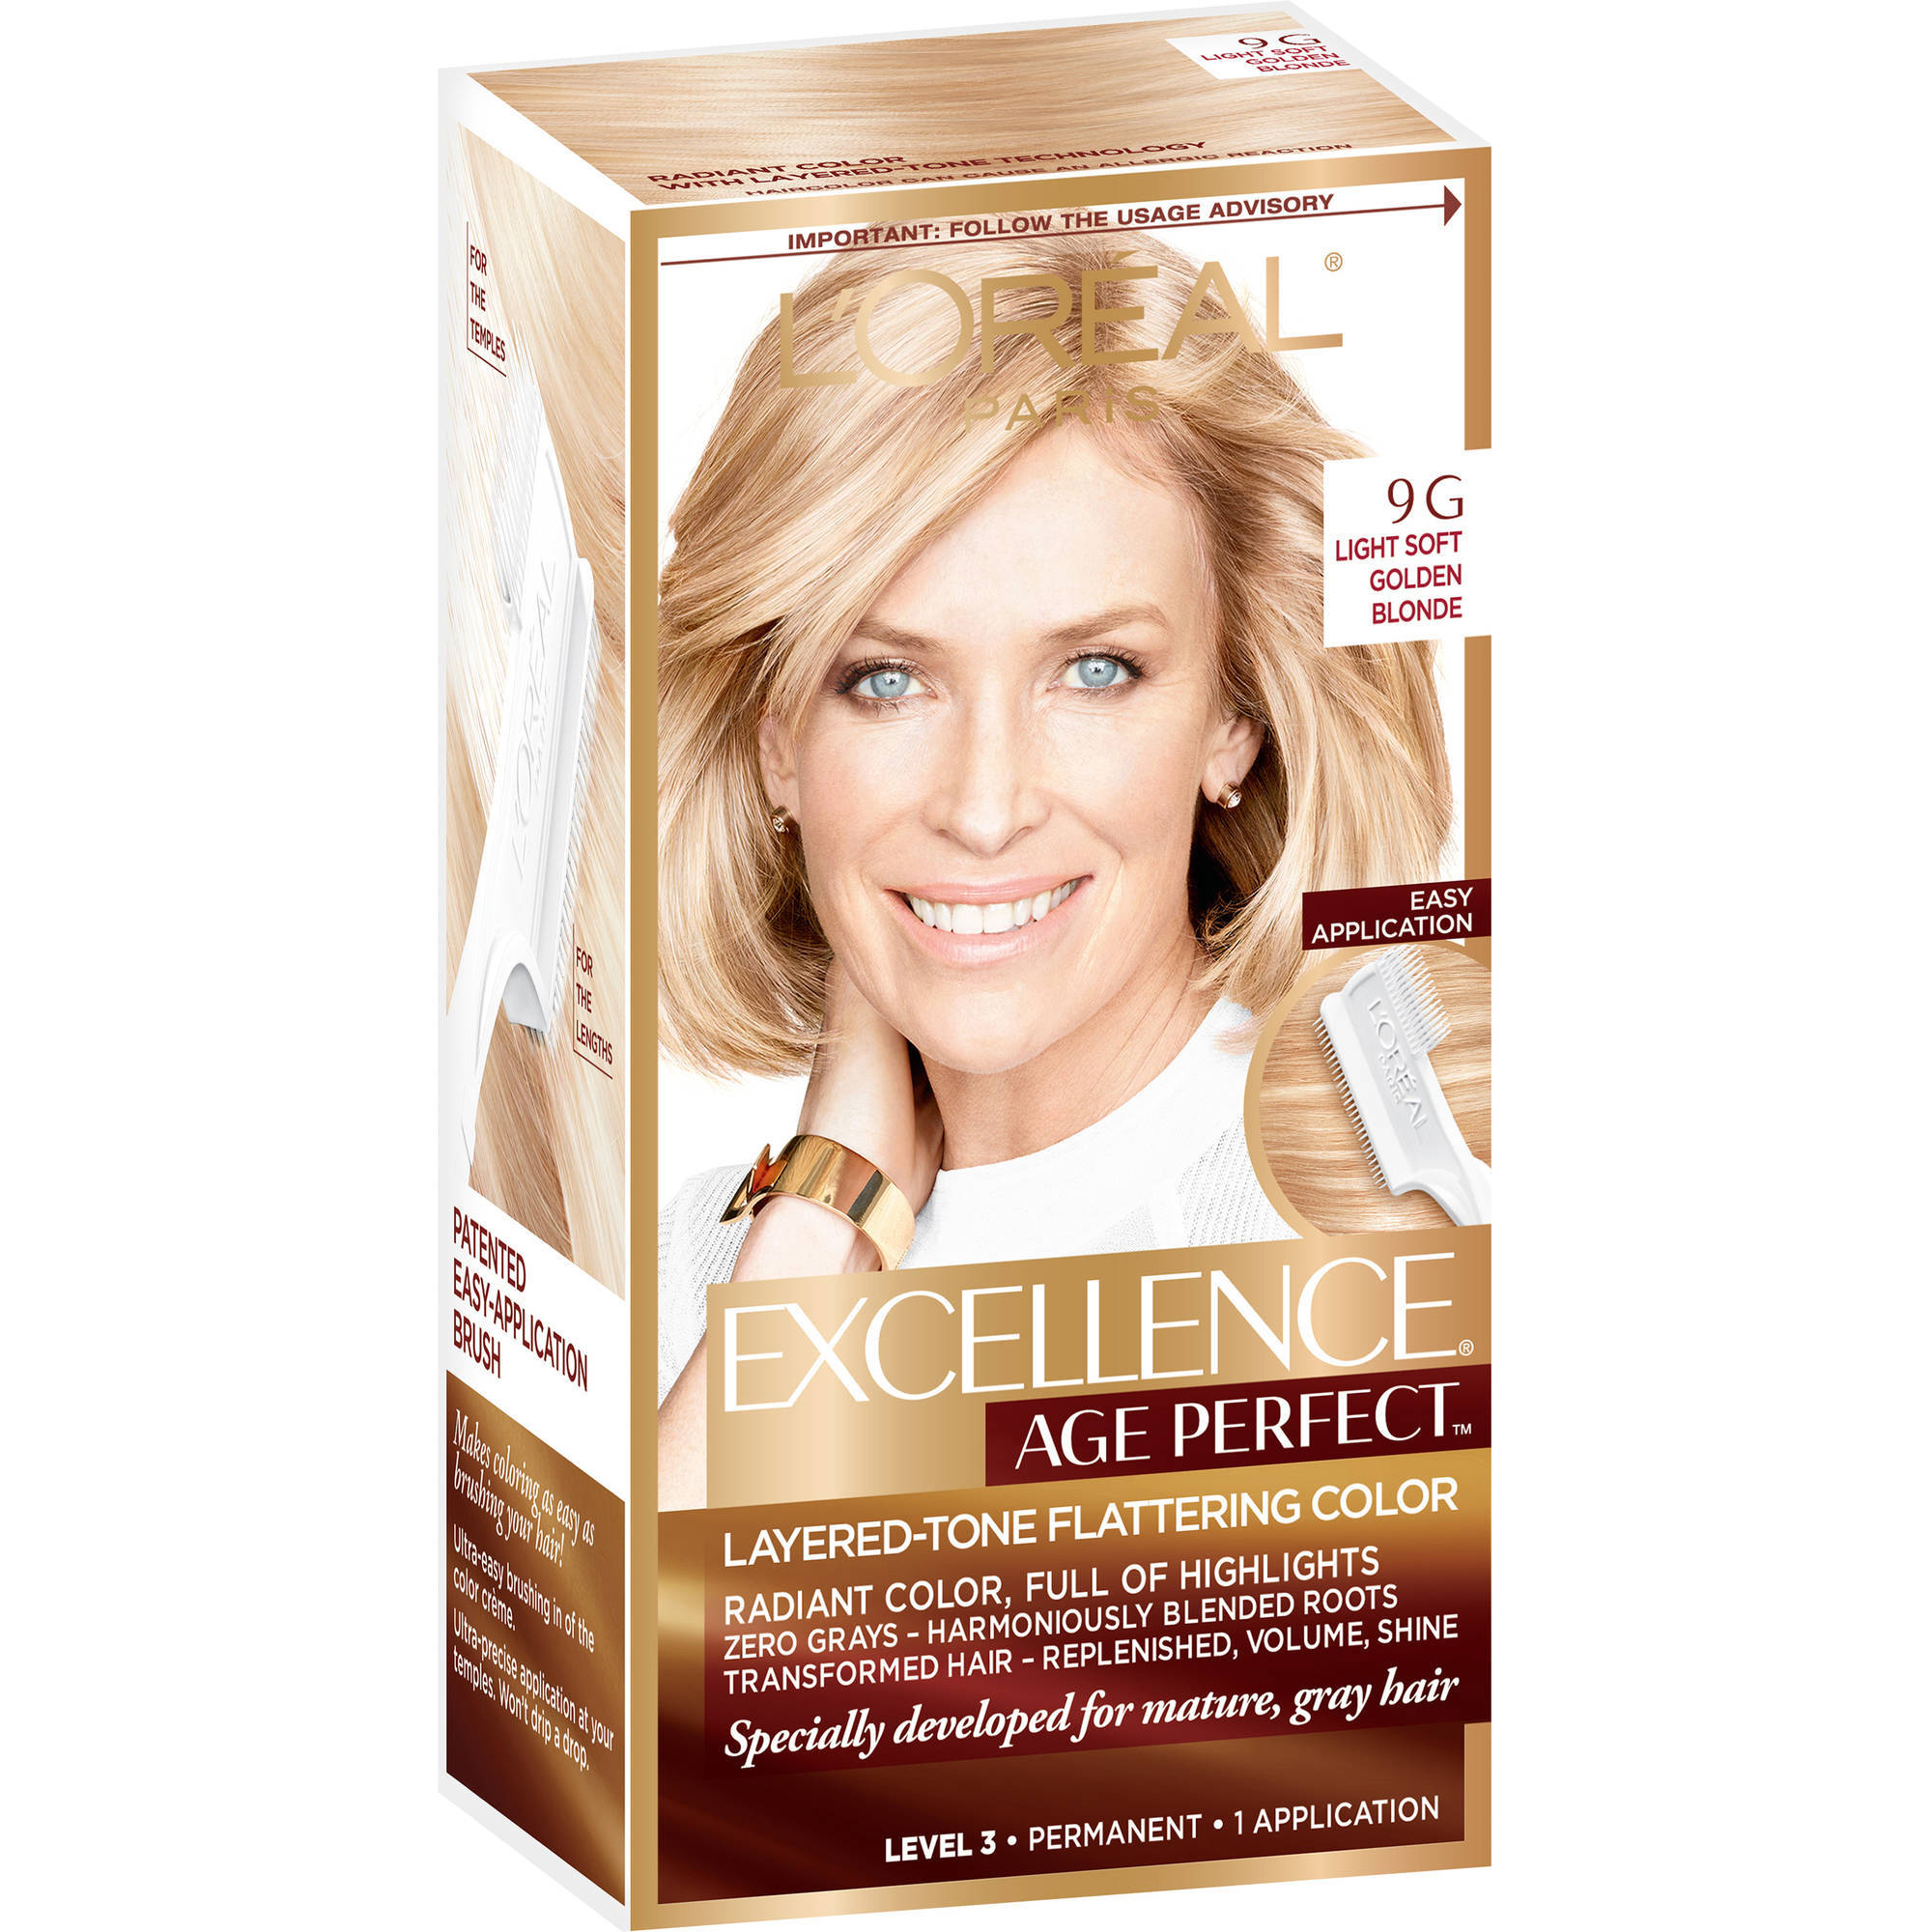 L'Oreal Paris ExcellenceAge Perfect Layered Tone Flattering Color - Walmart.com